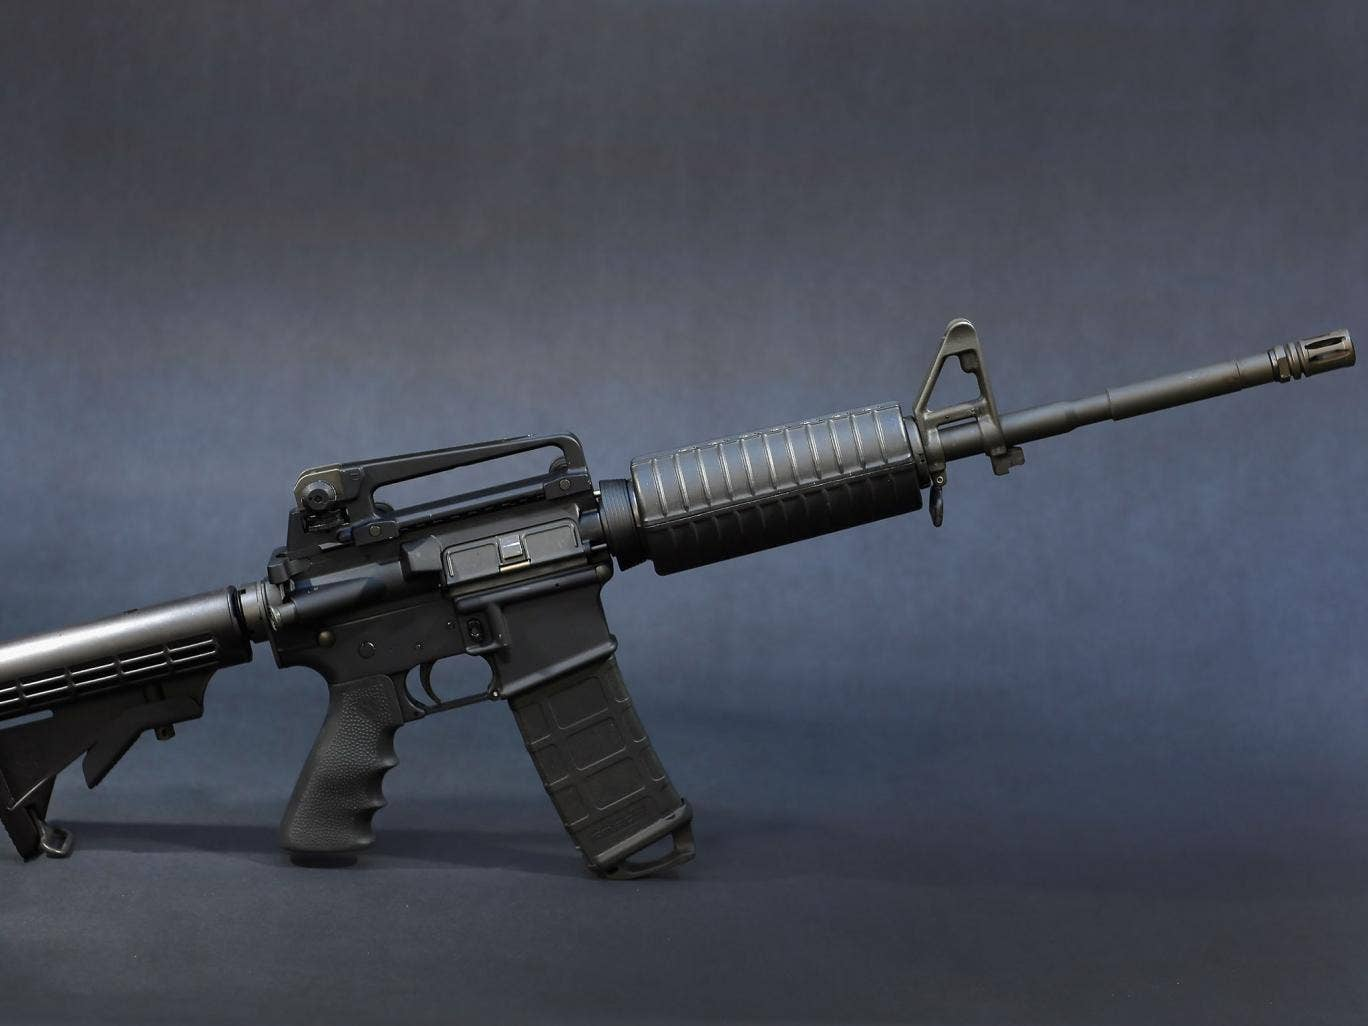 A Rock River Arms AR-15 rifle. The weapon is similar in style to the Bushmaster AR-15 rifle that was used during a massacre at an elementary school in Newtown, Connecticut. Firearm sales have surged recently as speculation of stricter gun laws and a re-in